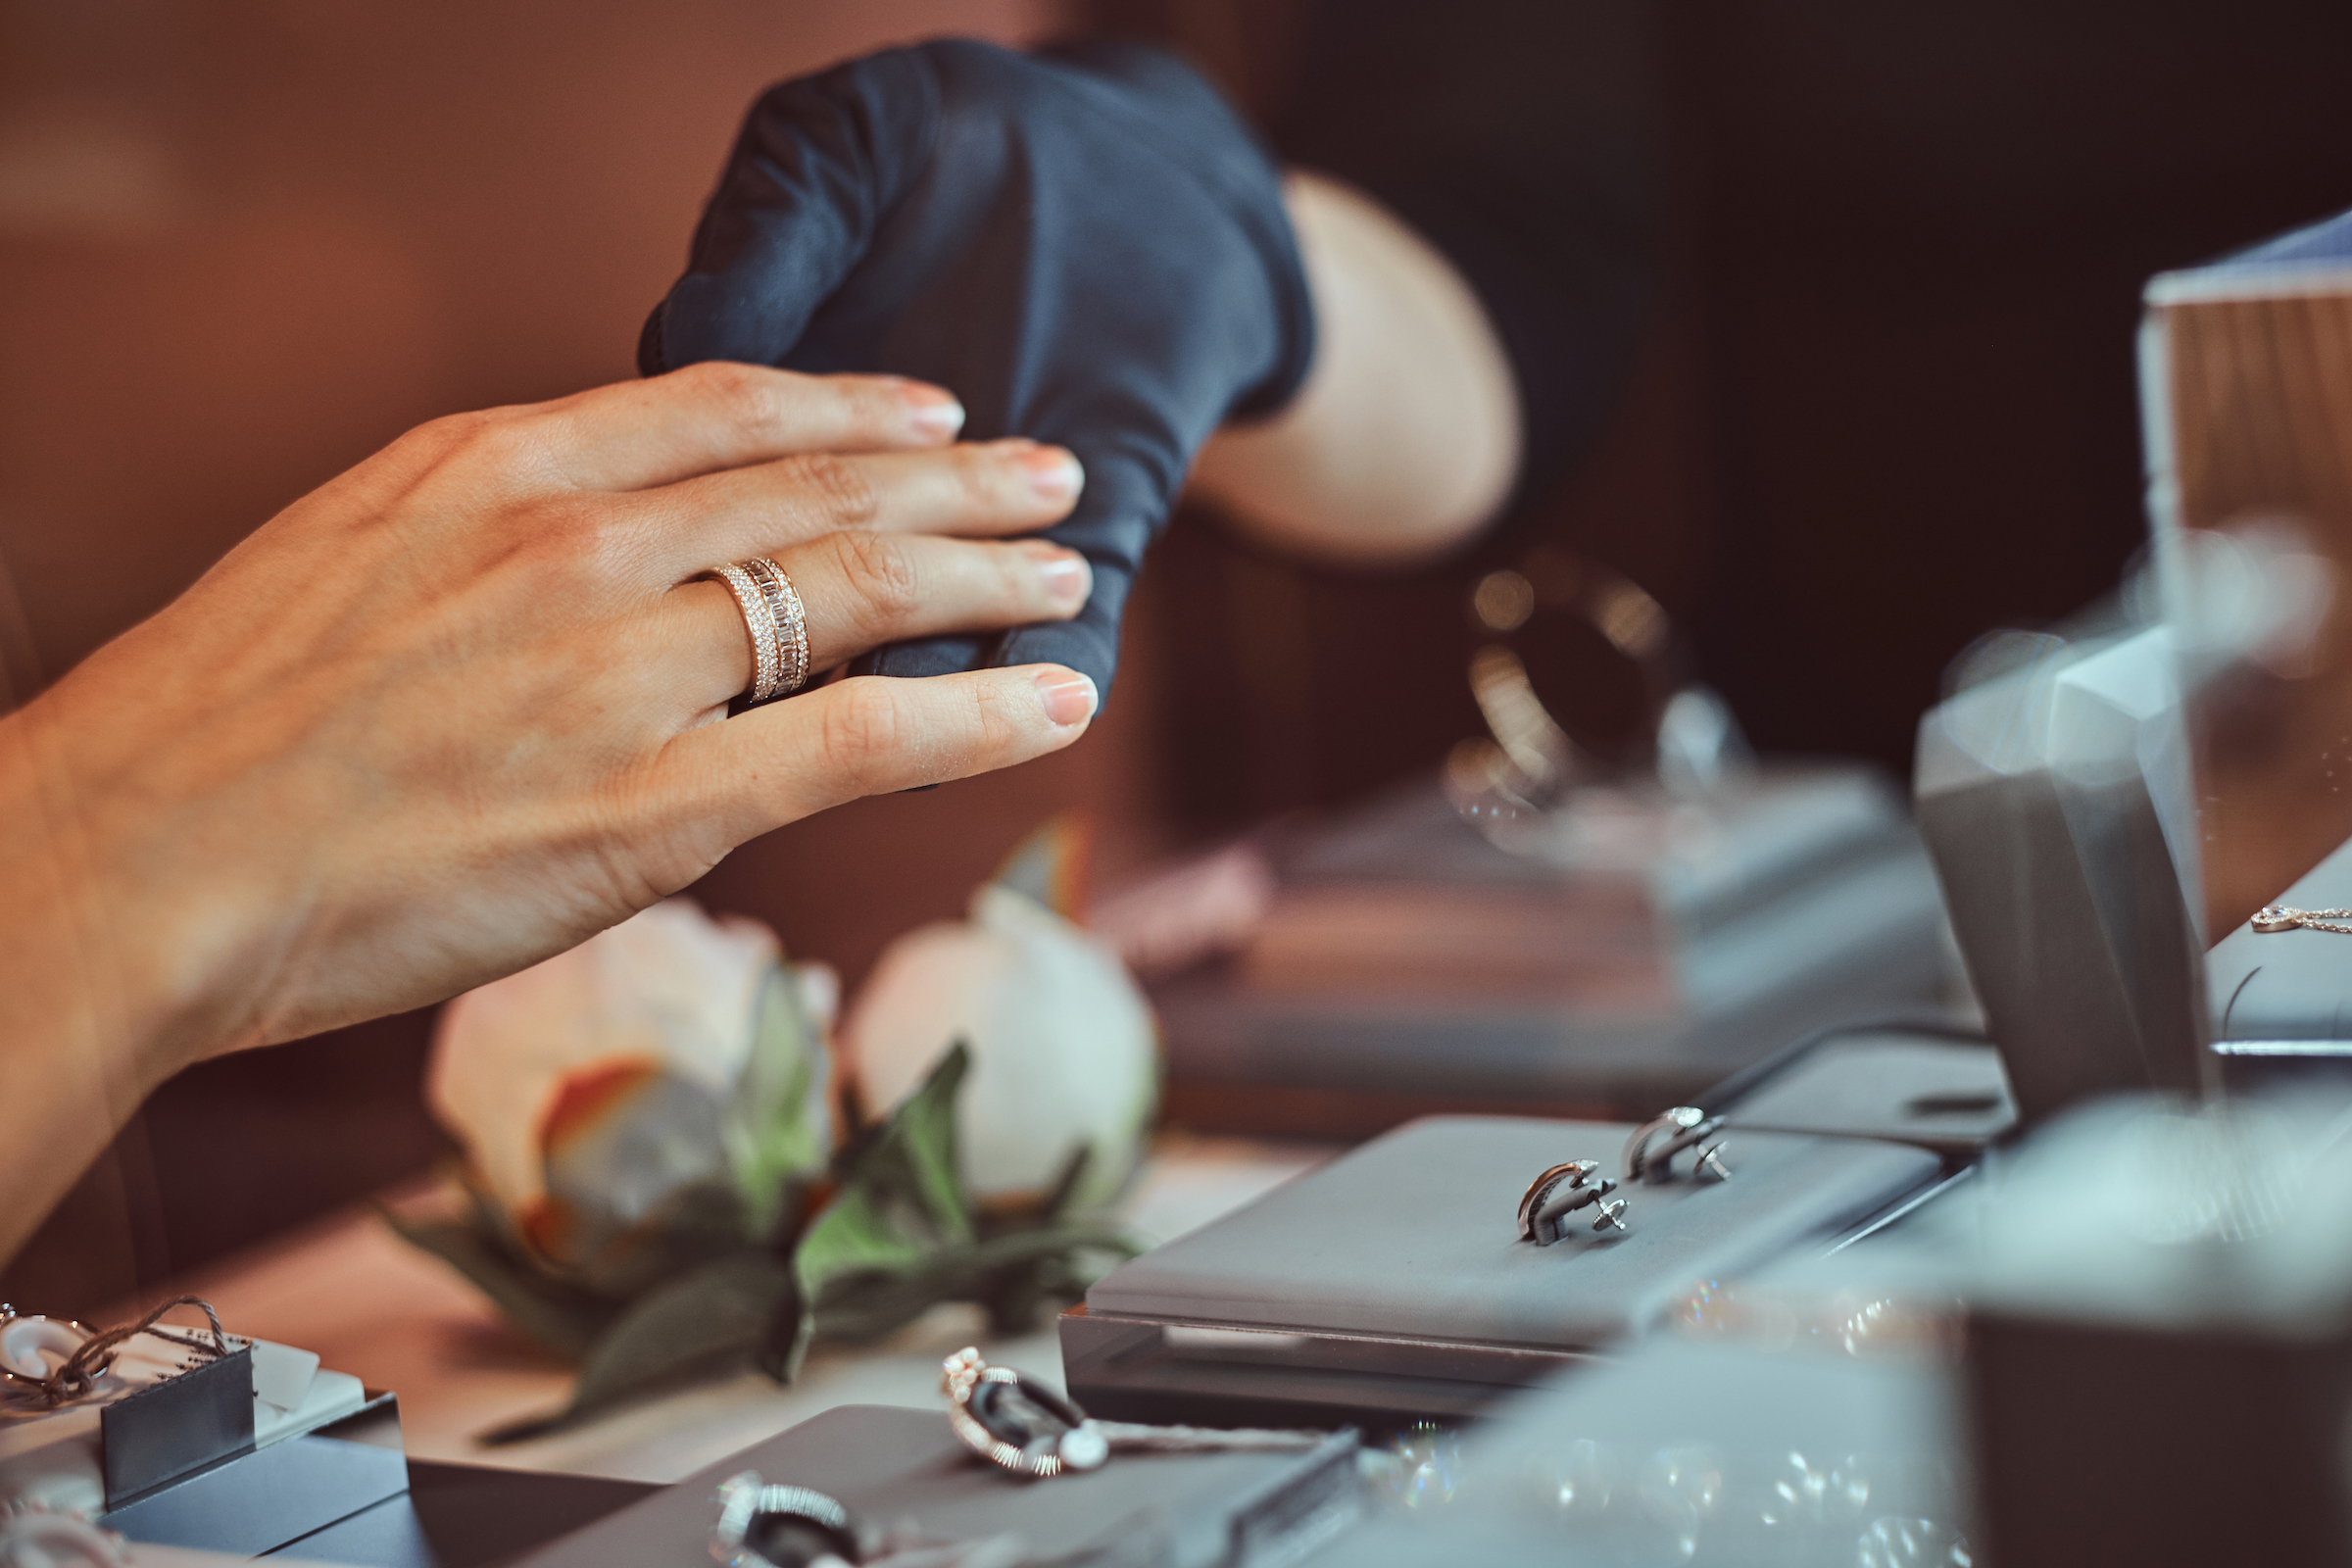 girl tries on wedding ring in luxury jewelry store D78JNSC